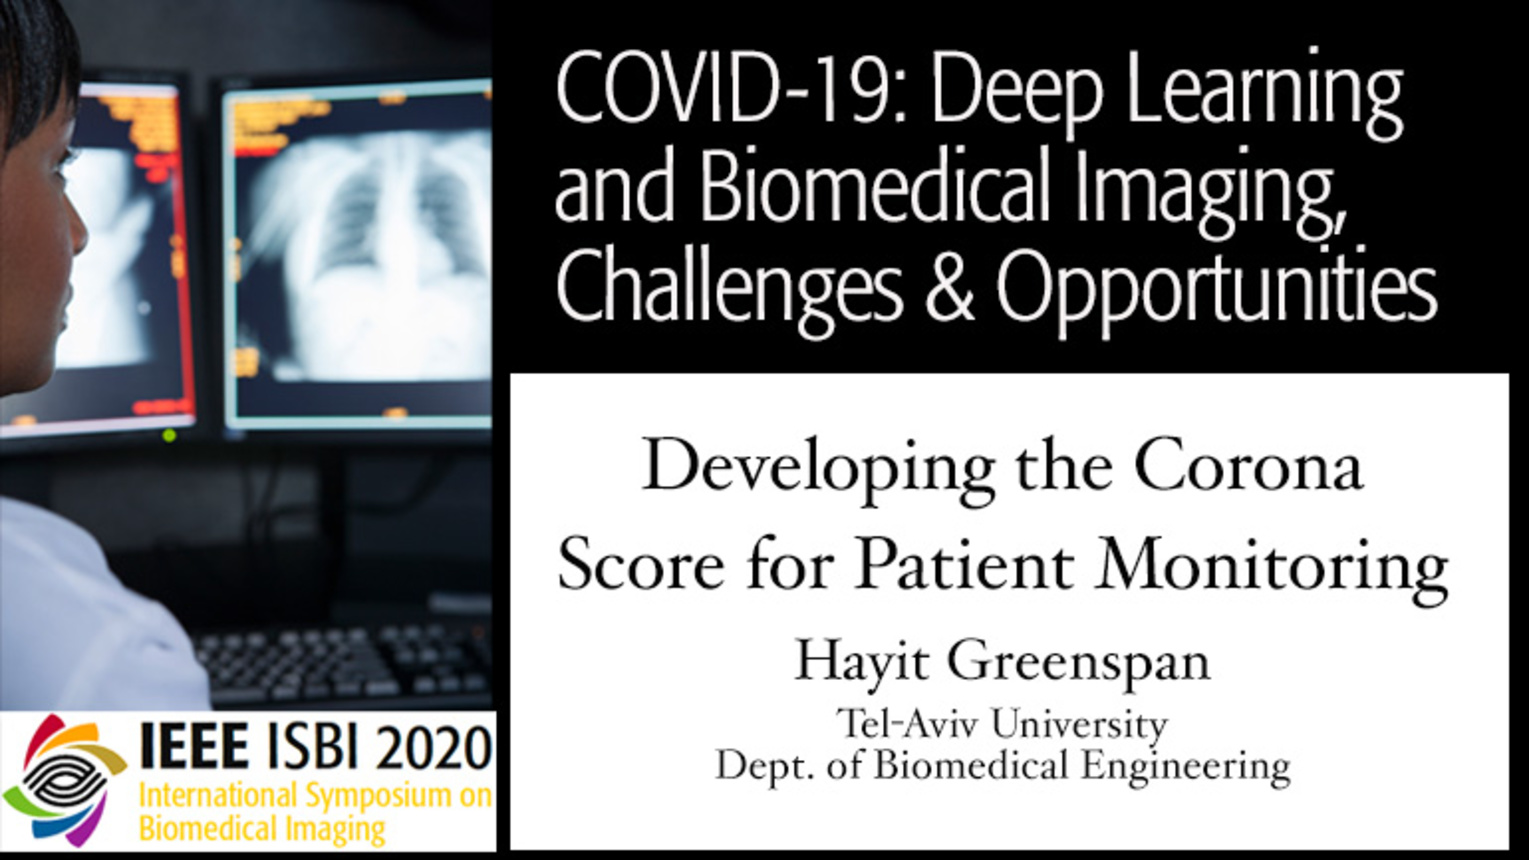 Hayit Greenspan - COVID-19, Deep Learning and Biomedical Imaging Panel